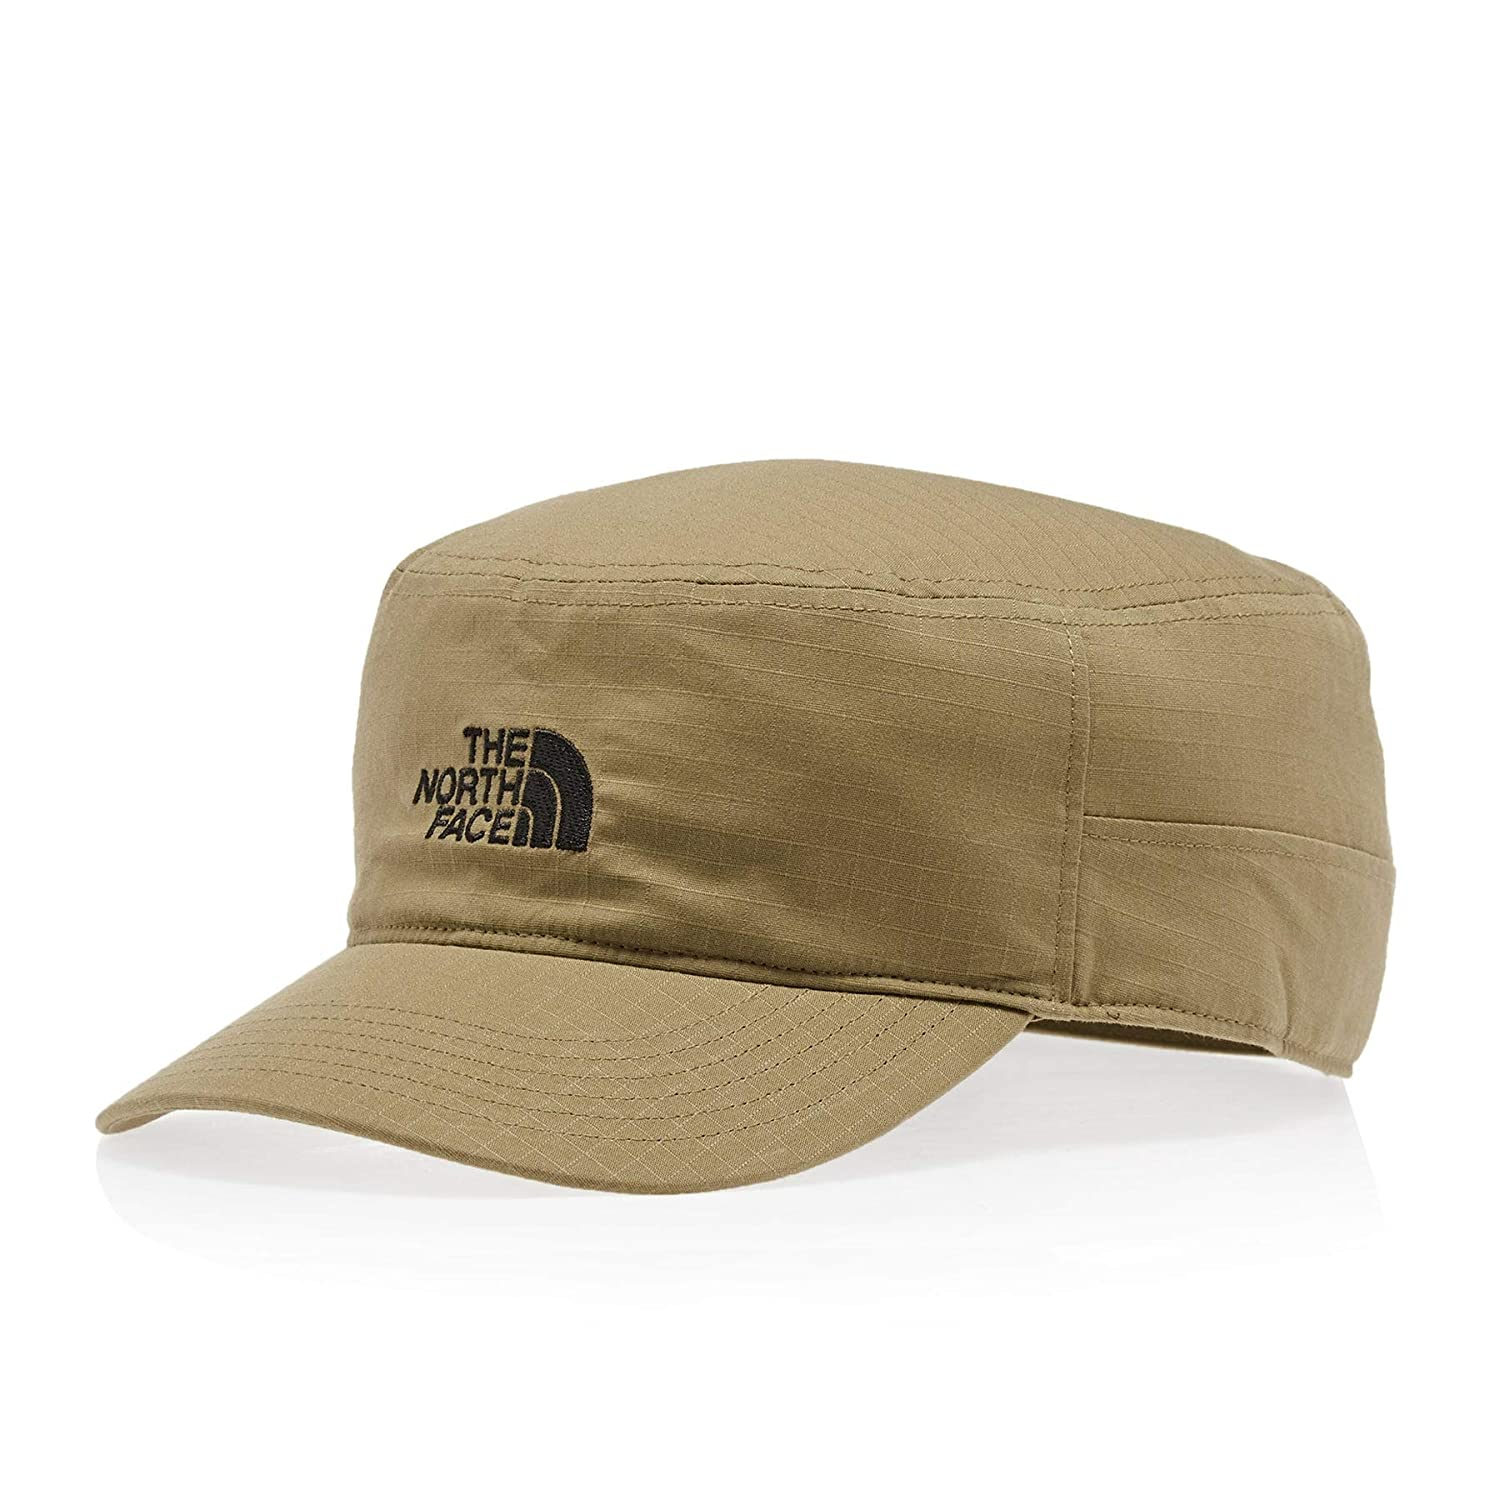 The North Face - Gorra de béisbol - para Hombre Kelp Tan S/M ...